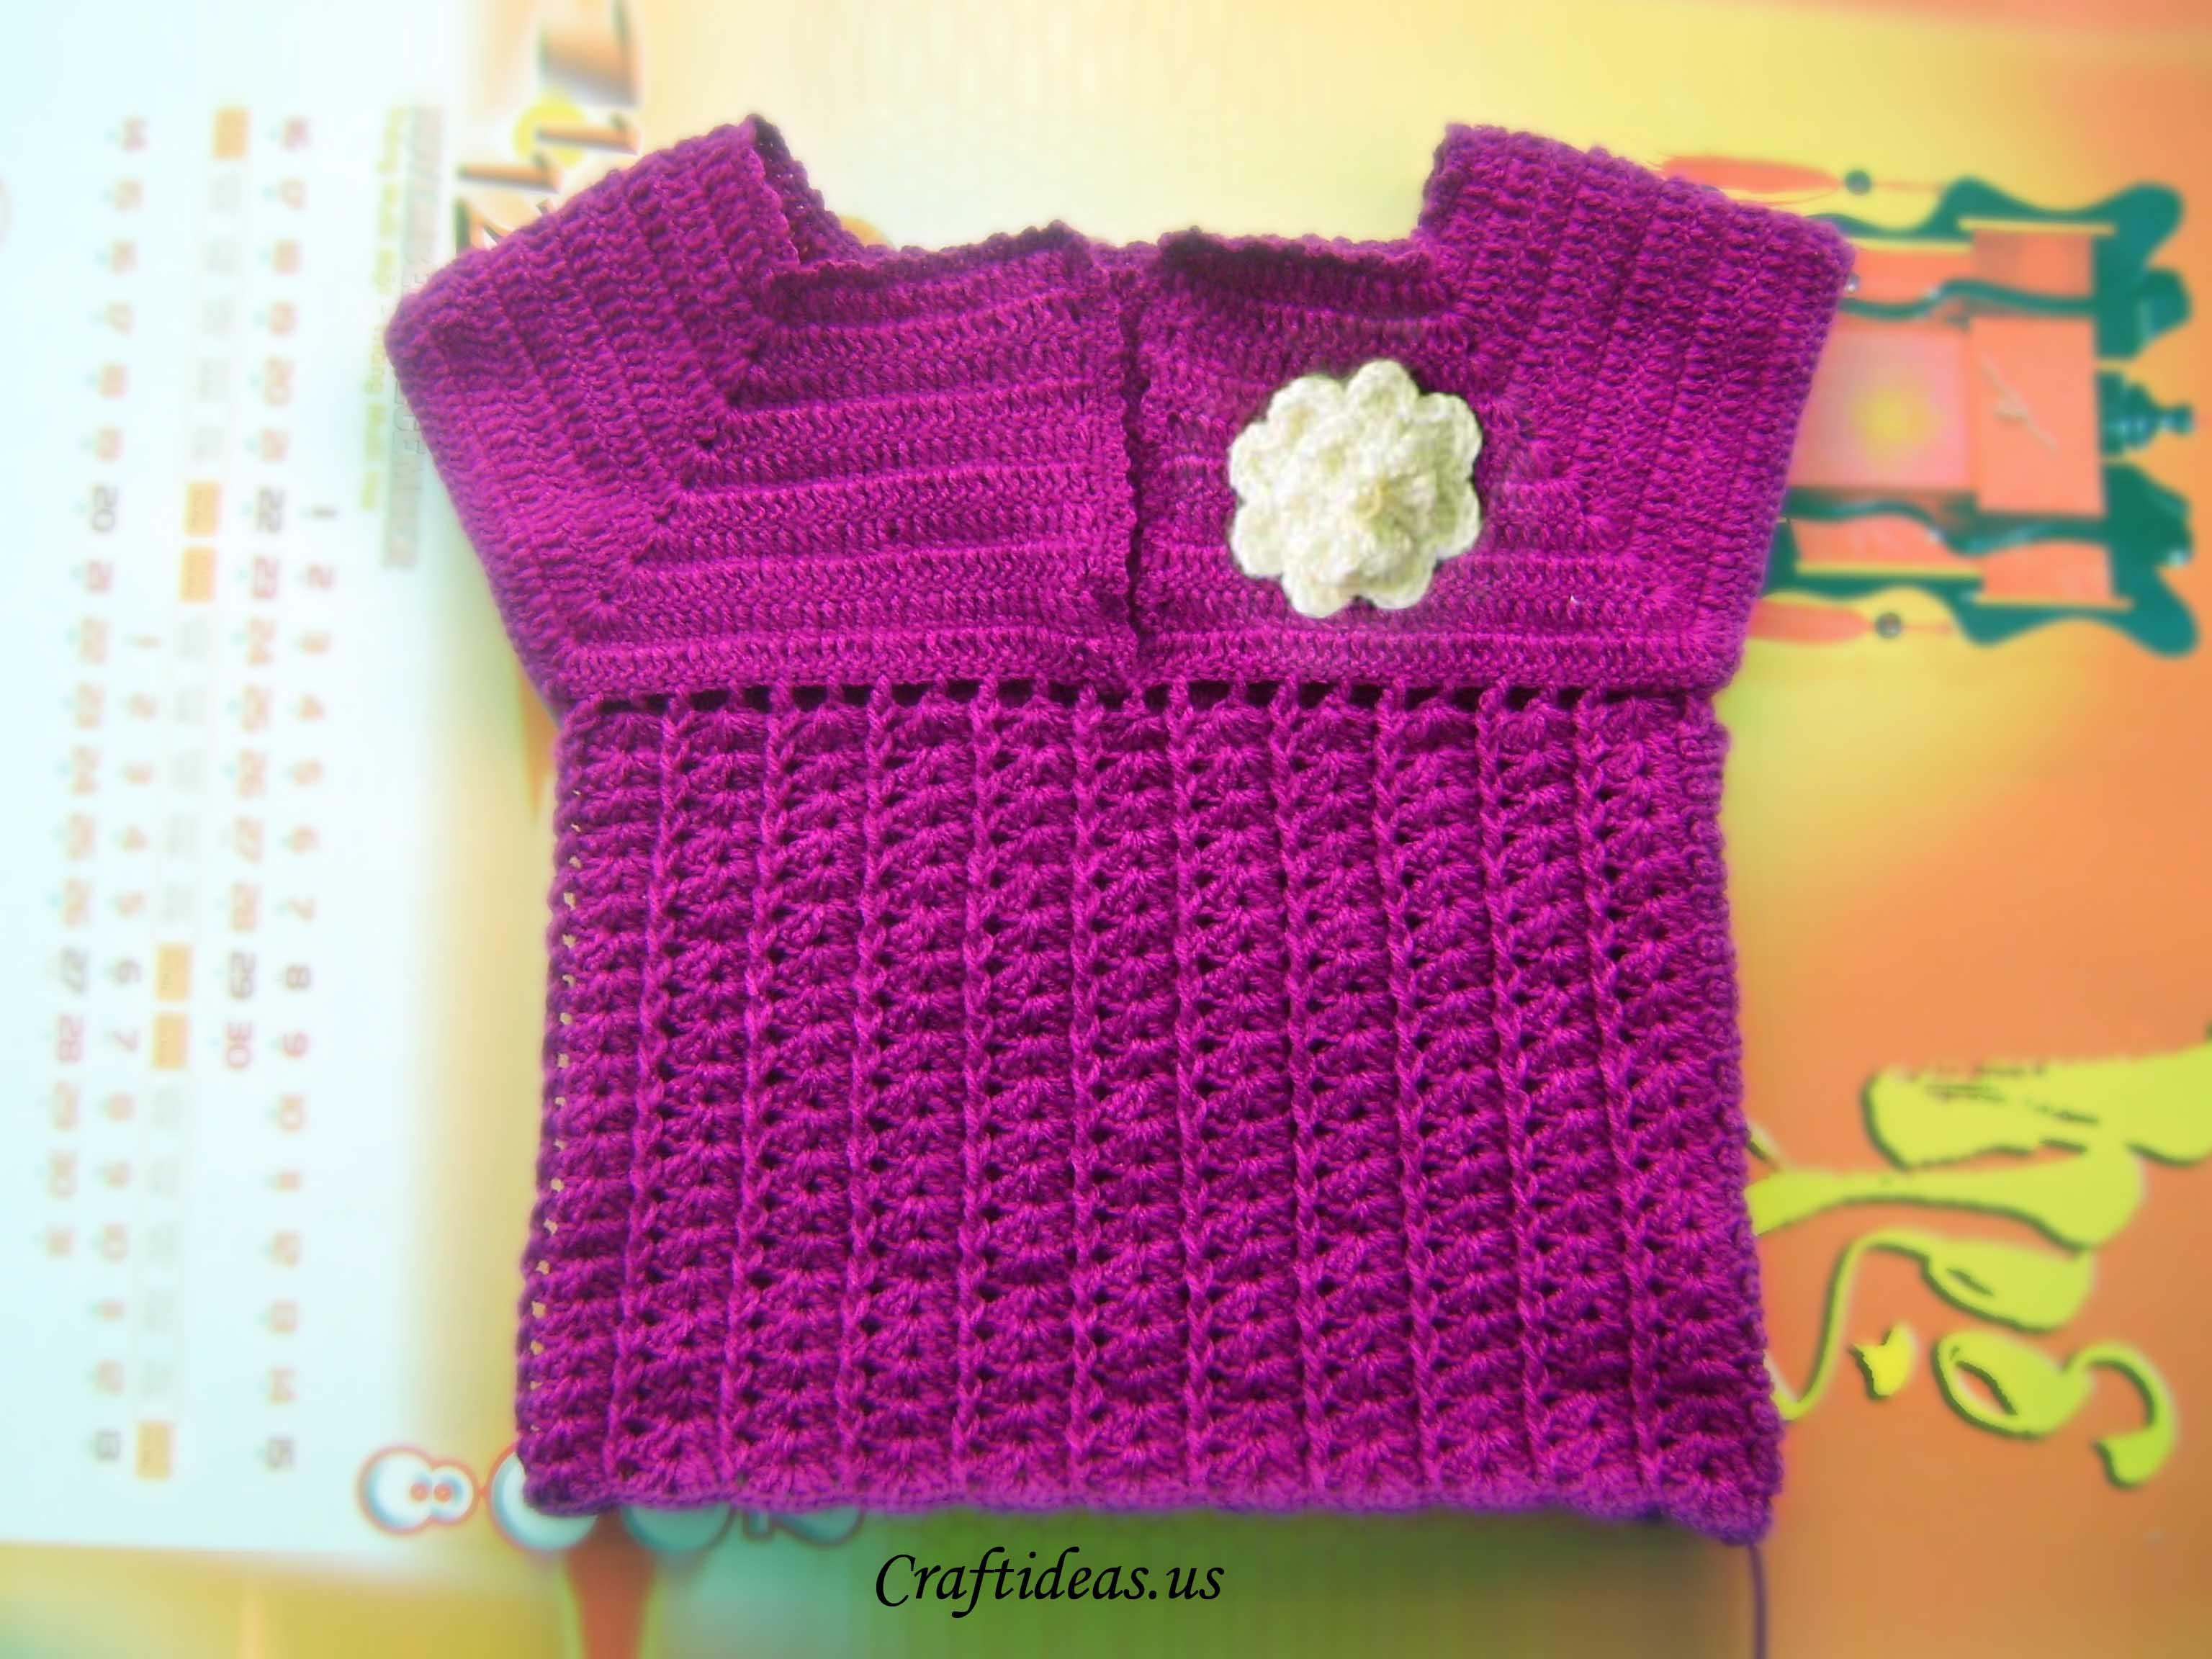 Crochet sweater for 2 year old girl craft ideas